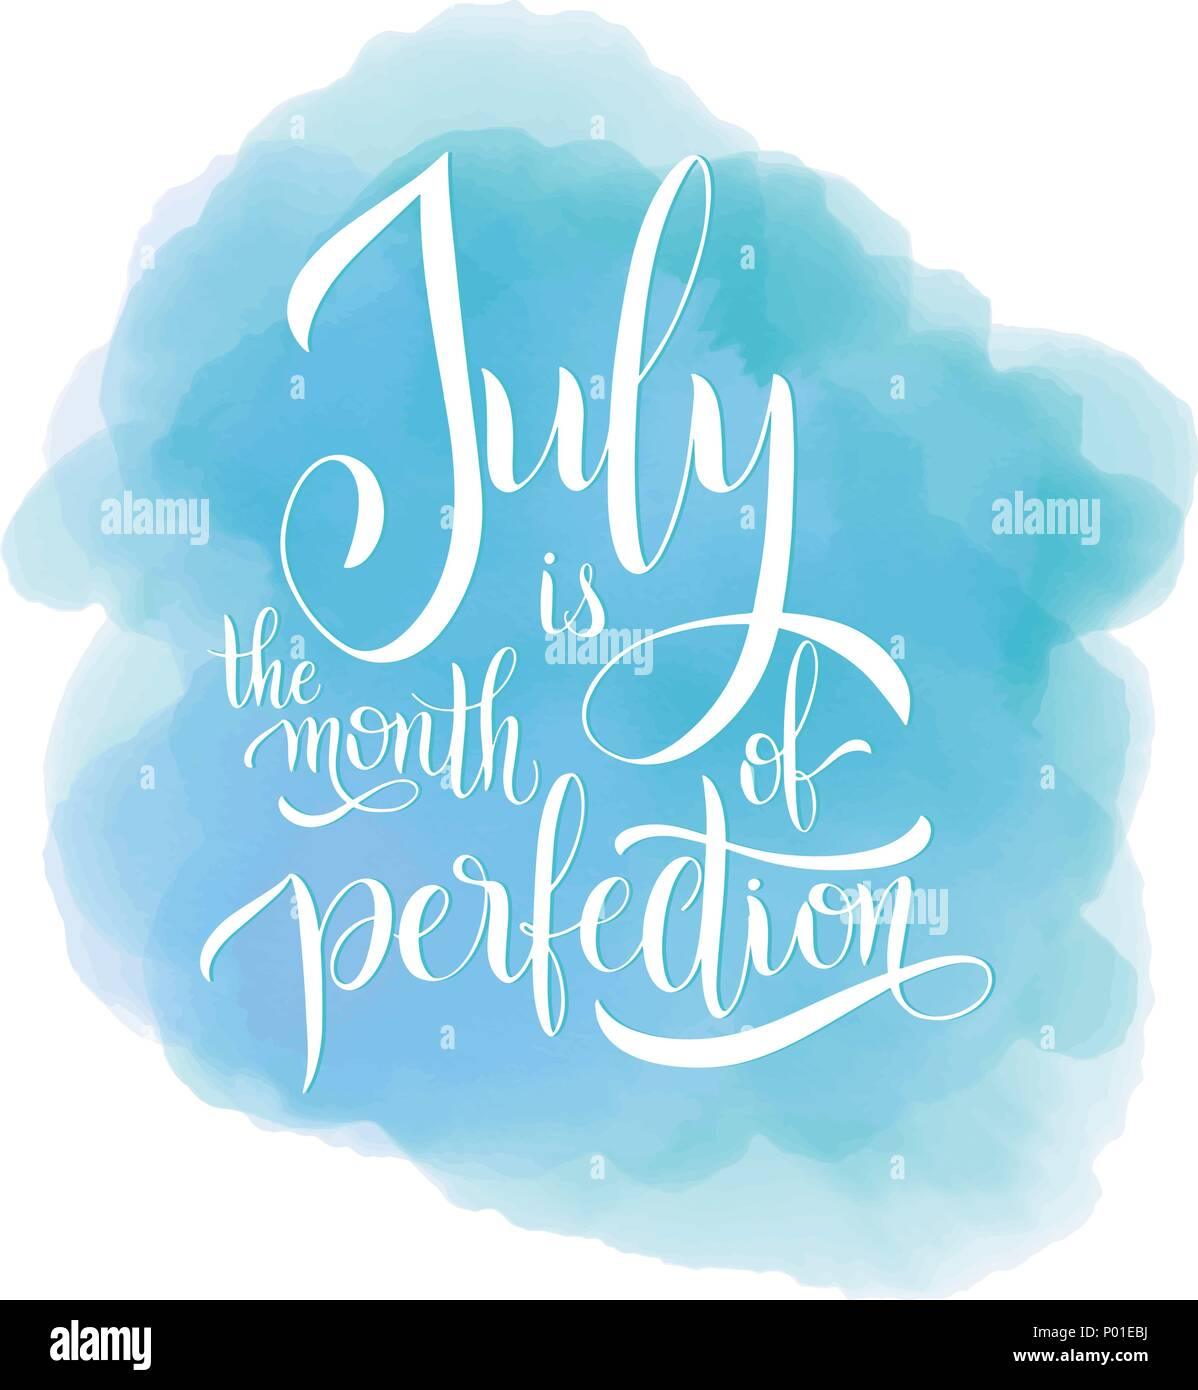 July Is The Month Of Perfection Hello Lettering Elements For Invitations Posters Greeting Cards Seasons Greetings